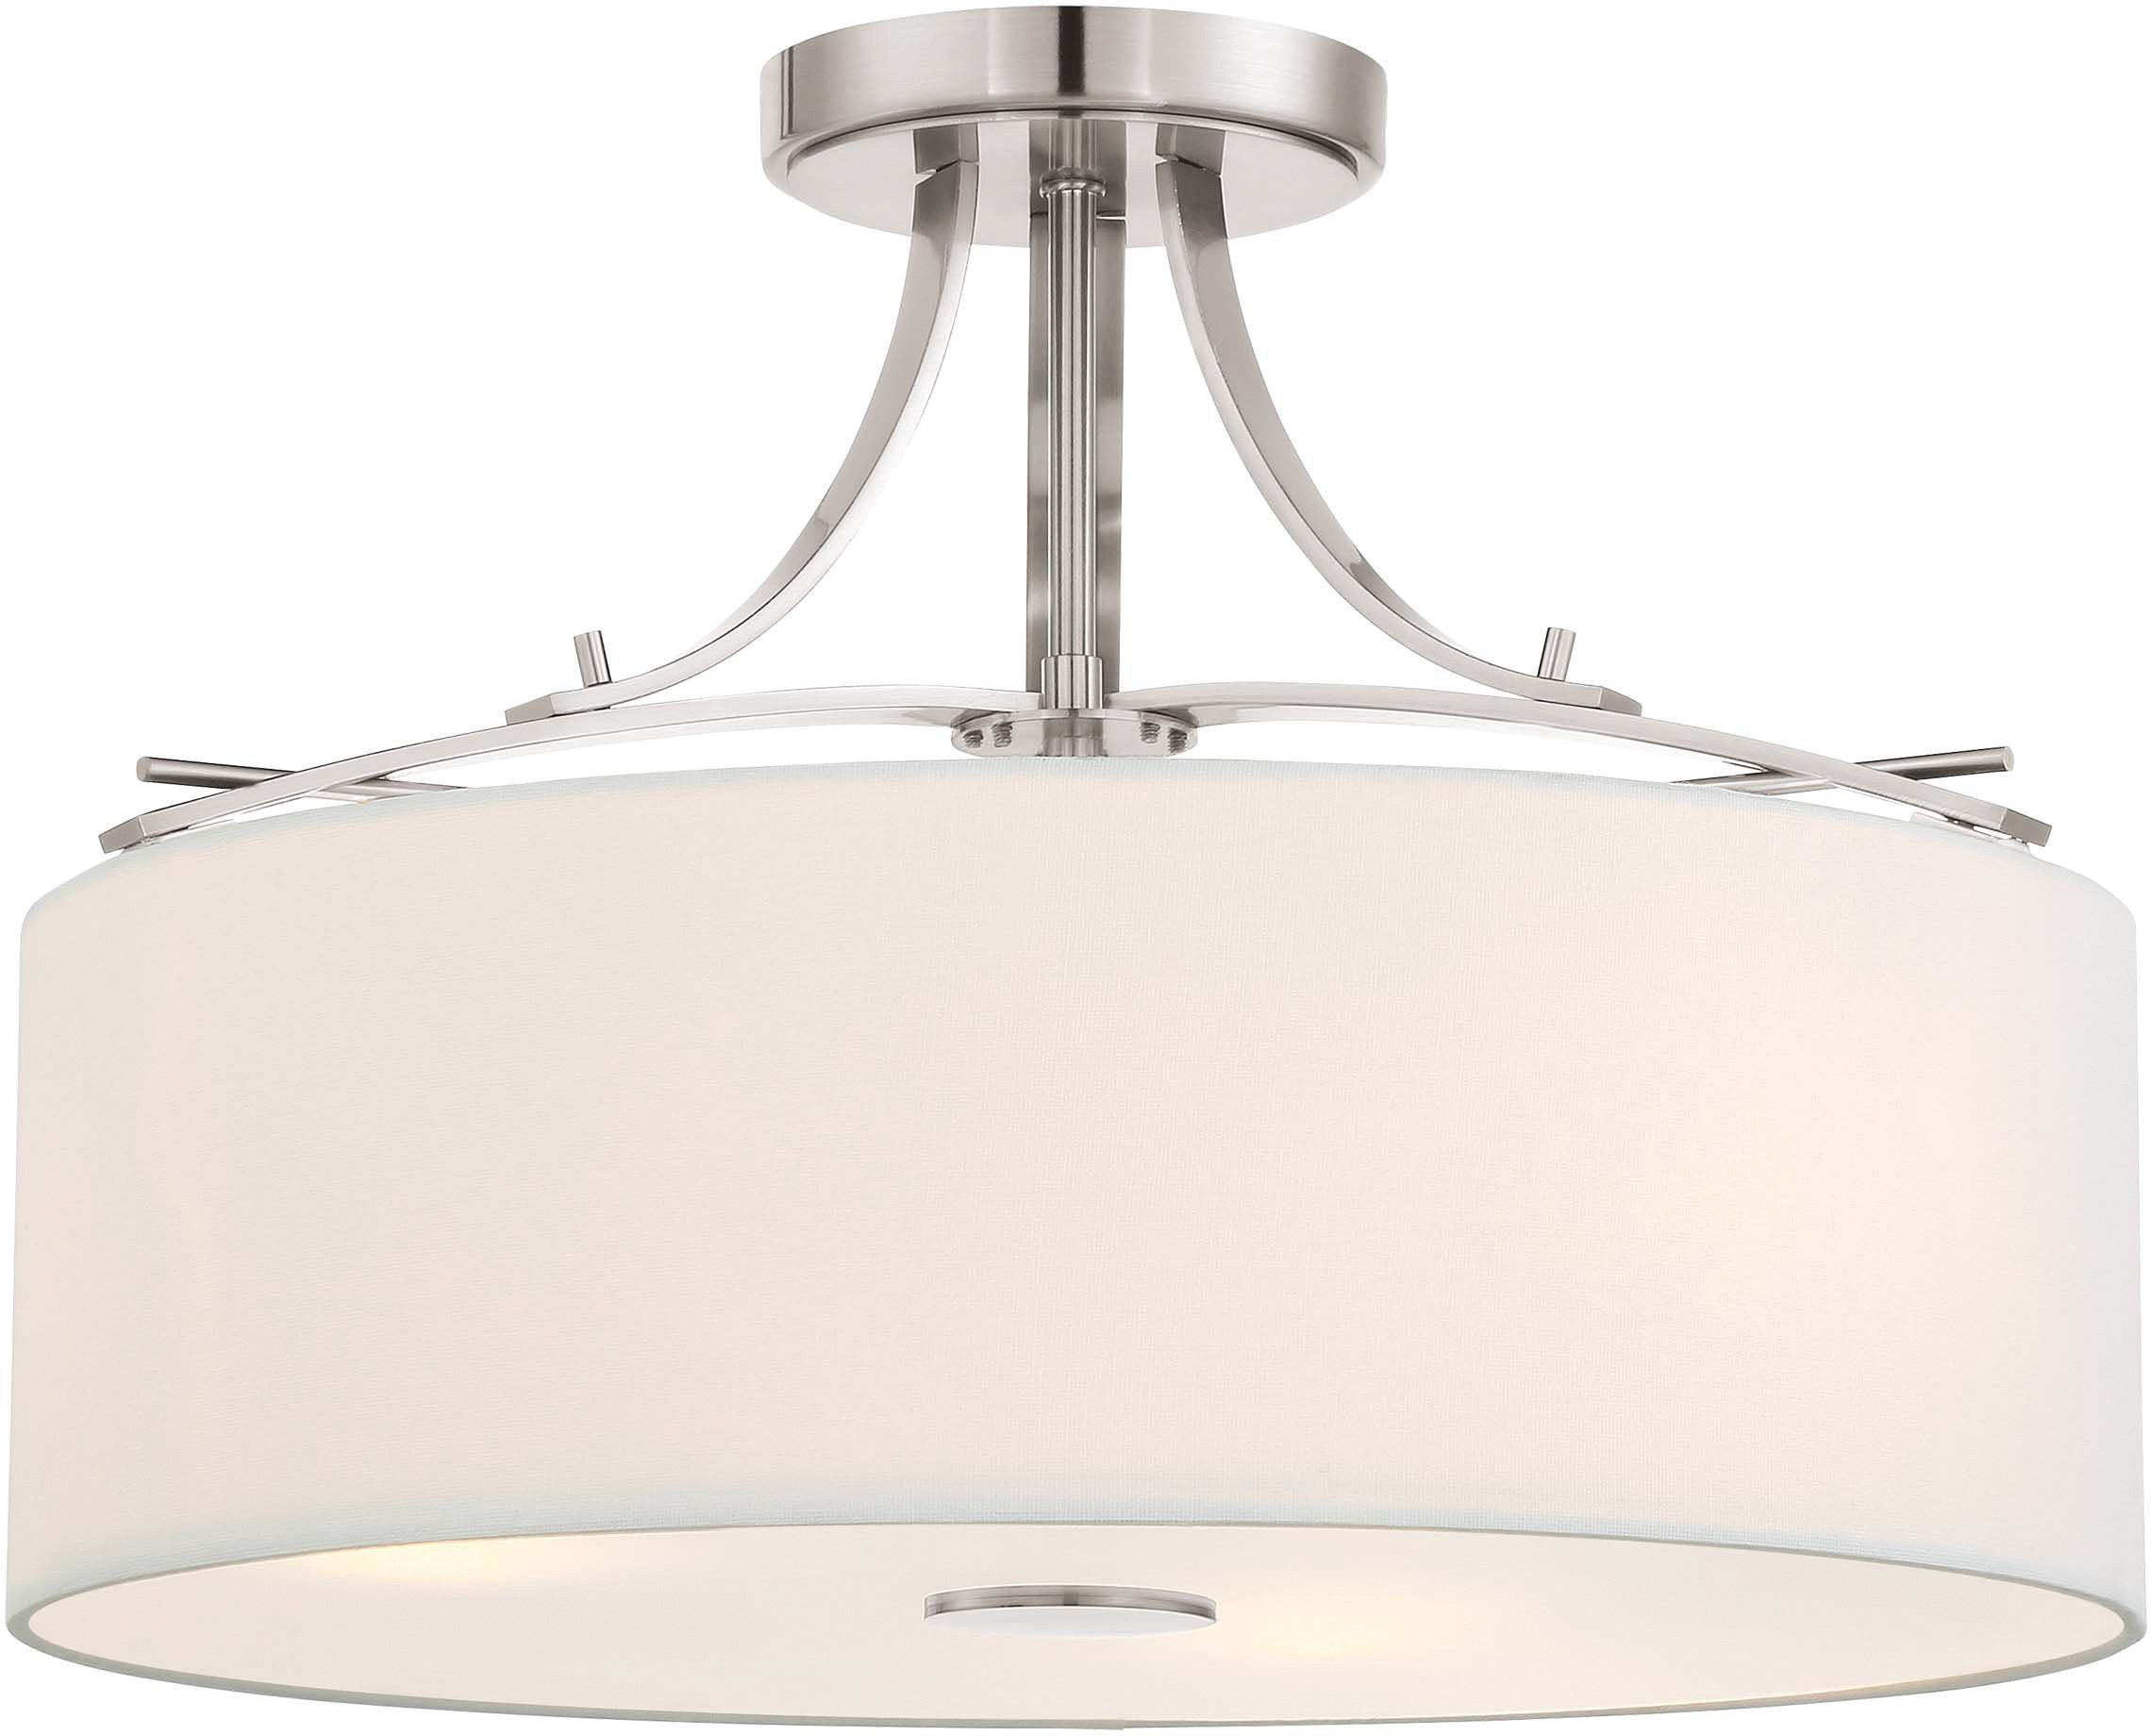 Pin On Lighting Ceiling Fans